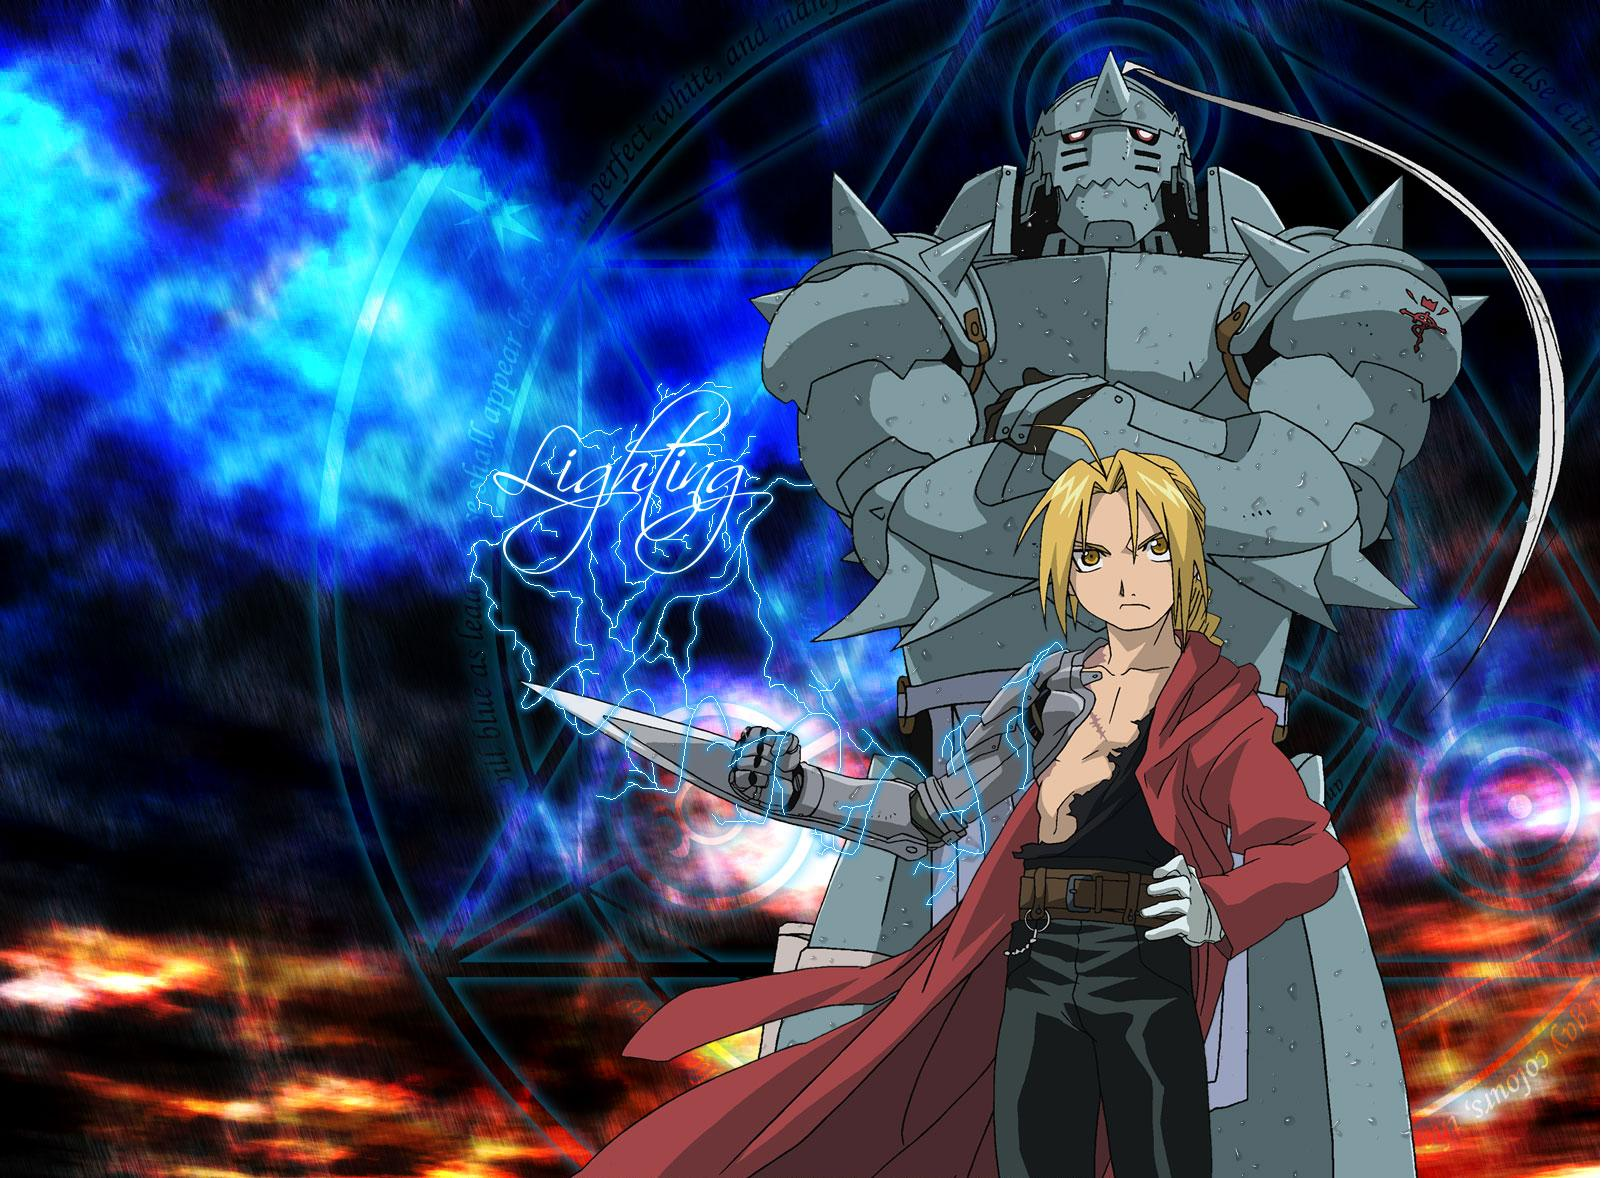 fullmetal alchemist brotherhood wallpaper 6 full metal alchemist porn 1601x1178